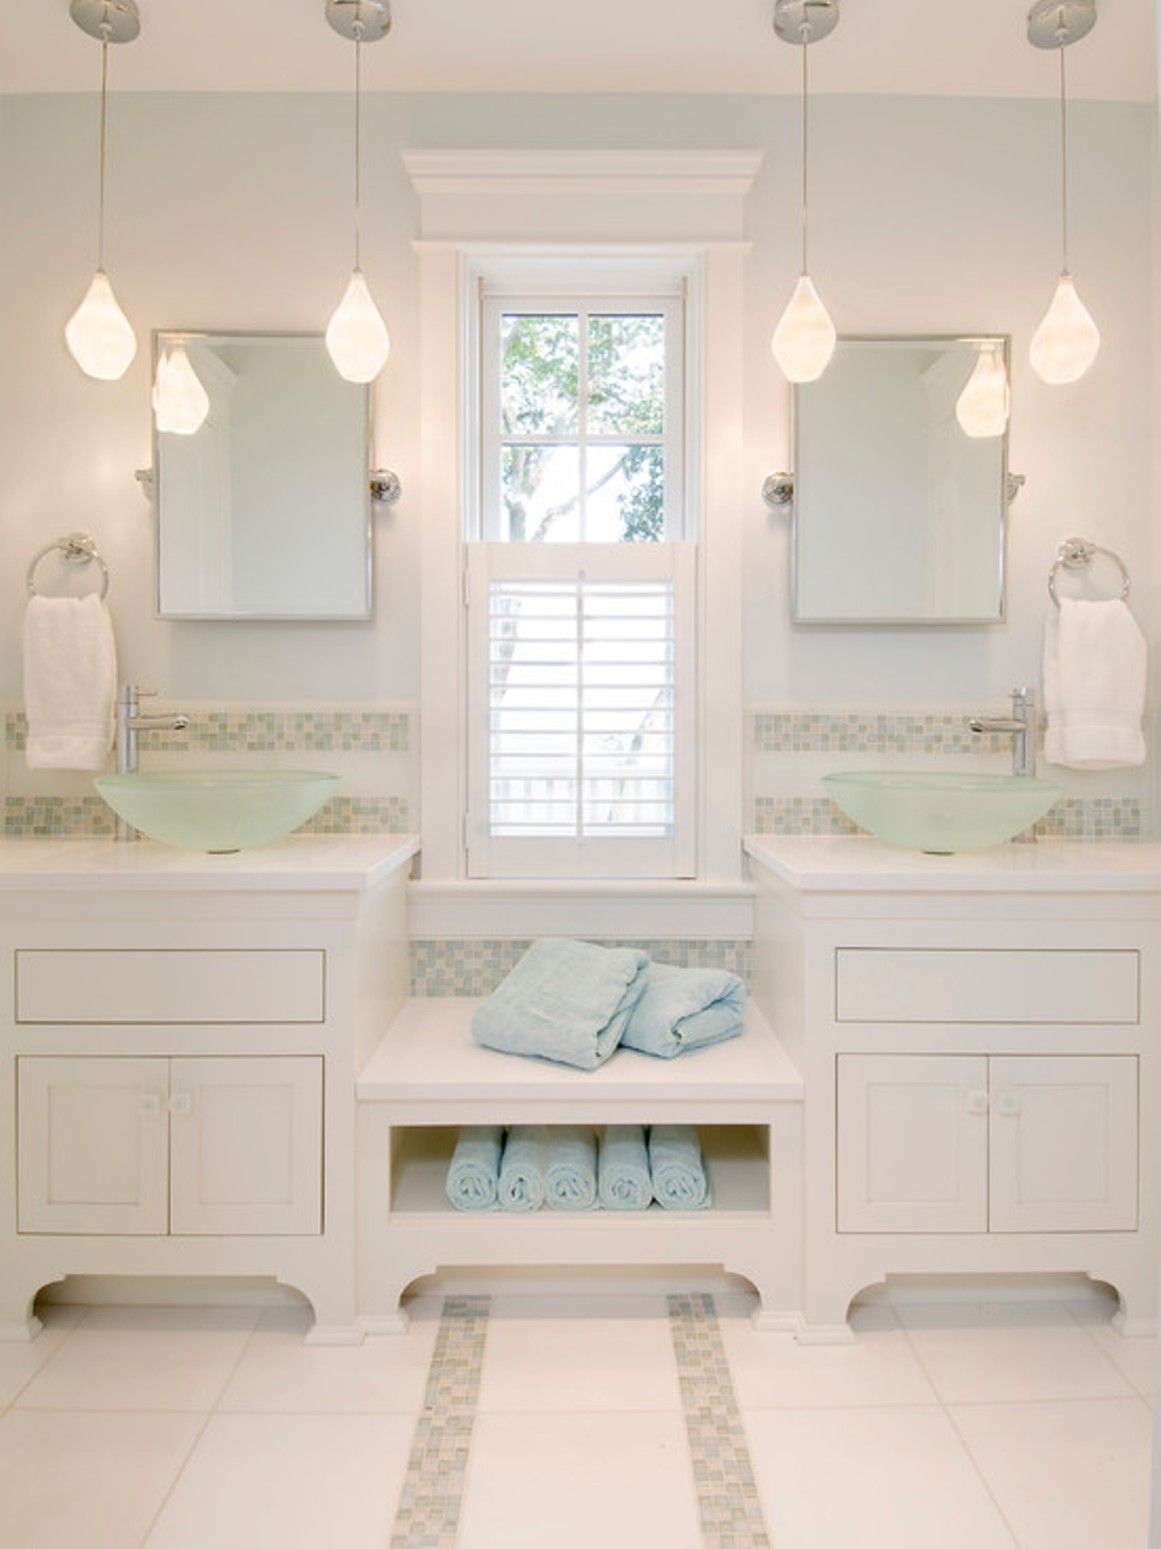 Bathroom Vanity Lights Pinterest bathroom , bathroom vanity lighting fixtures : awesome beach house